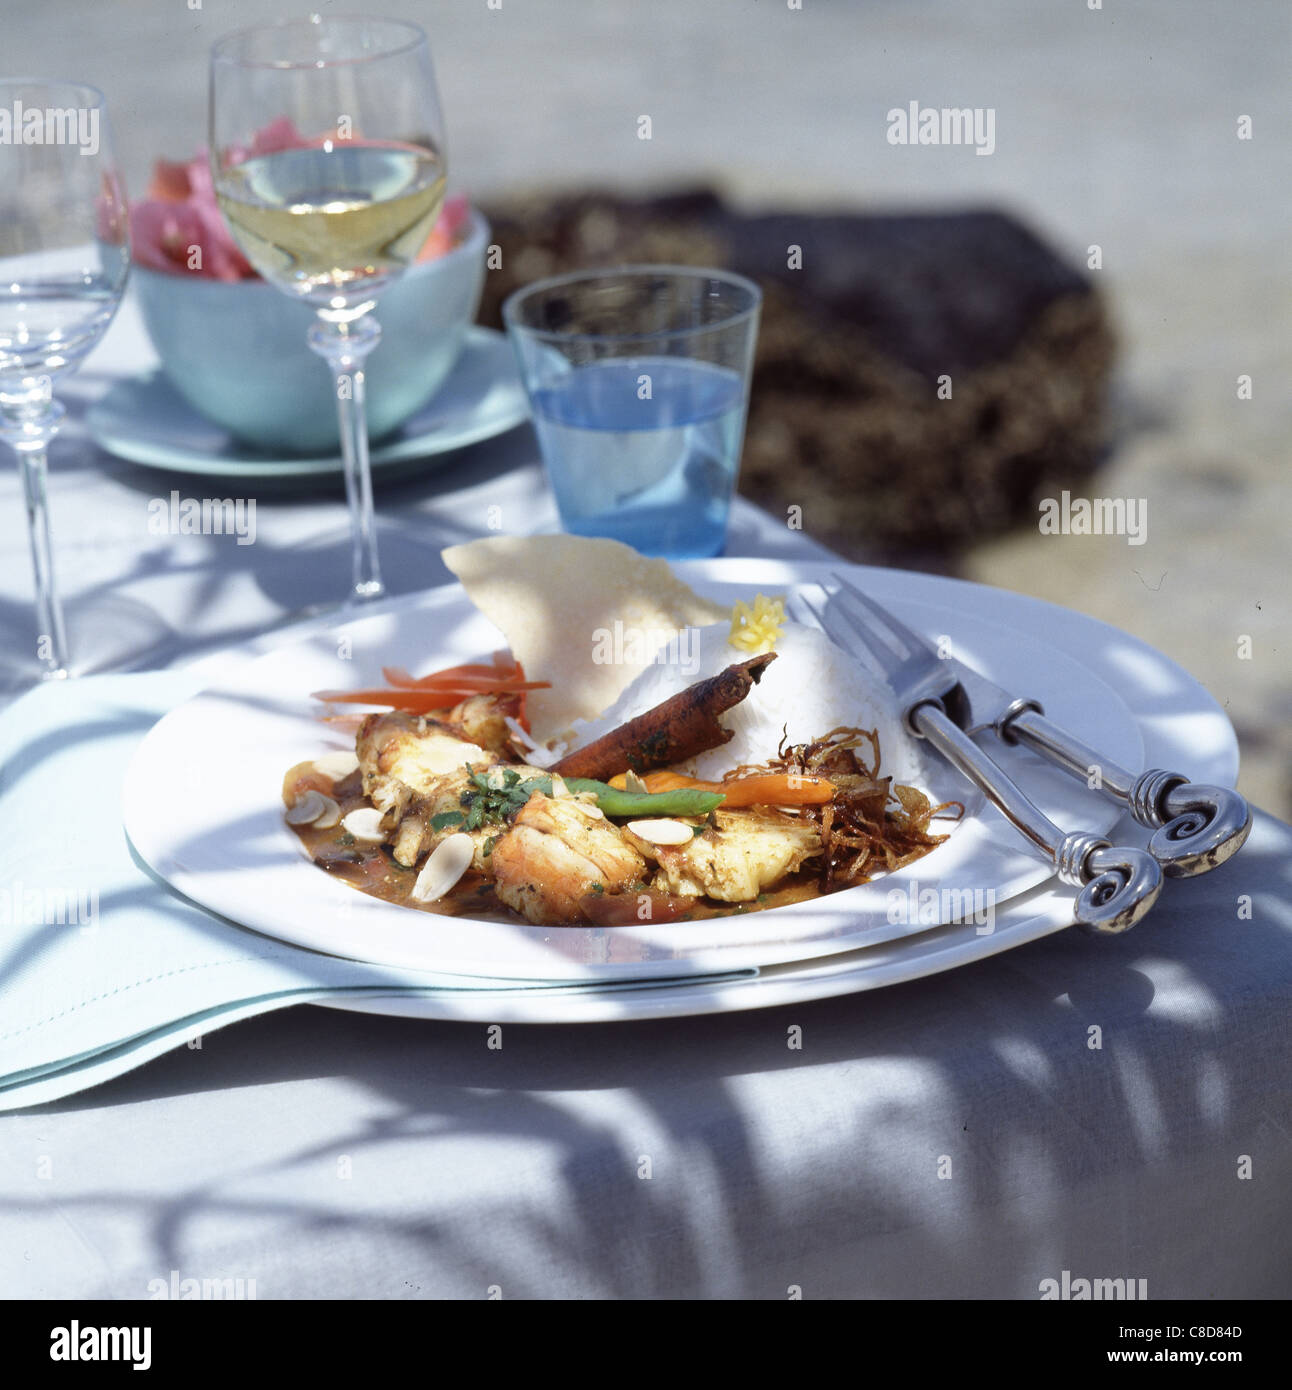 Mauritius lunch - Stock Image